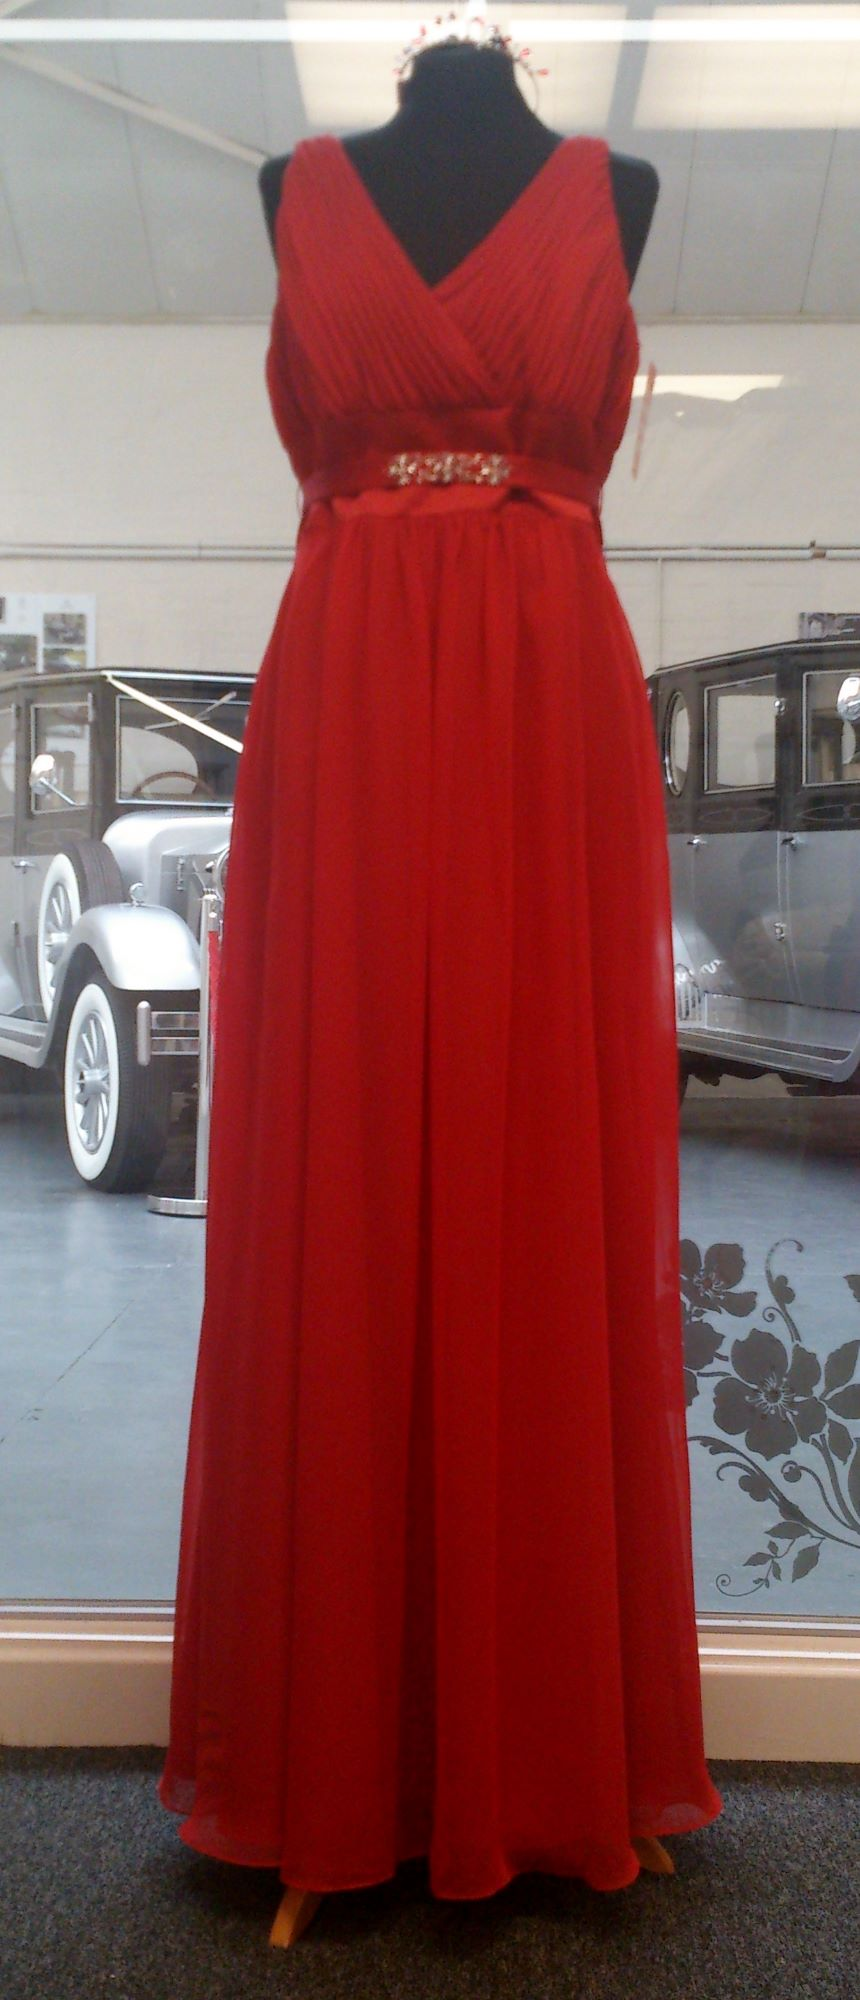 NEW Eden Red Chiffon & Satin Bridesmaid Dress - Size 14